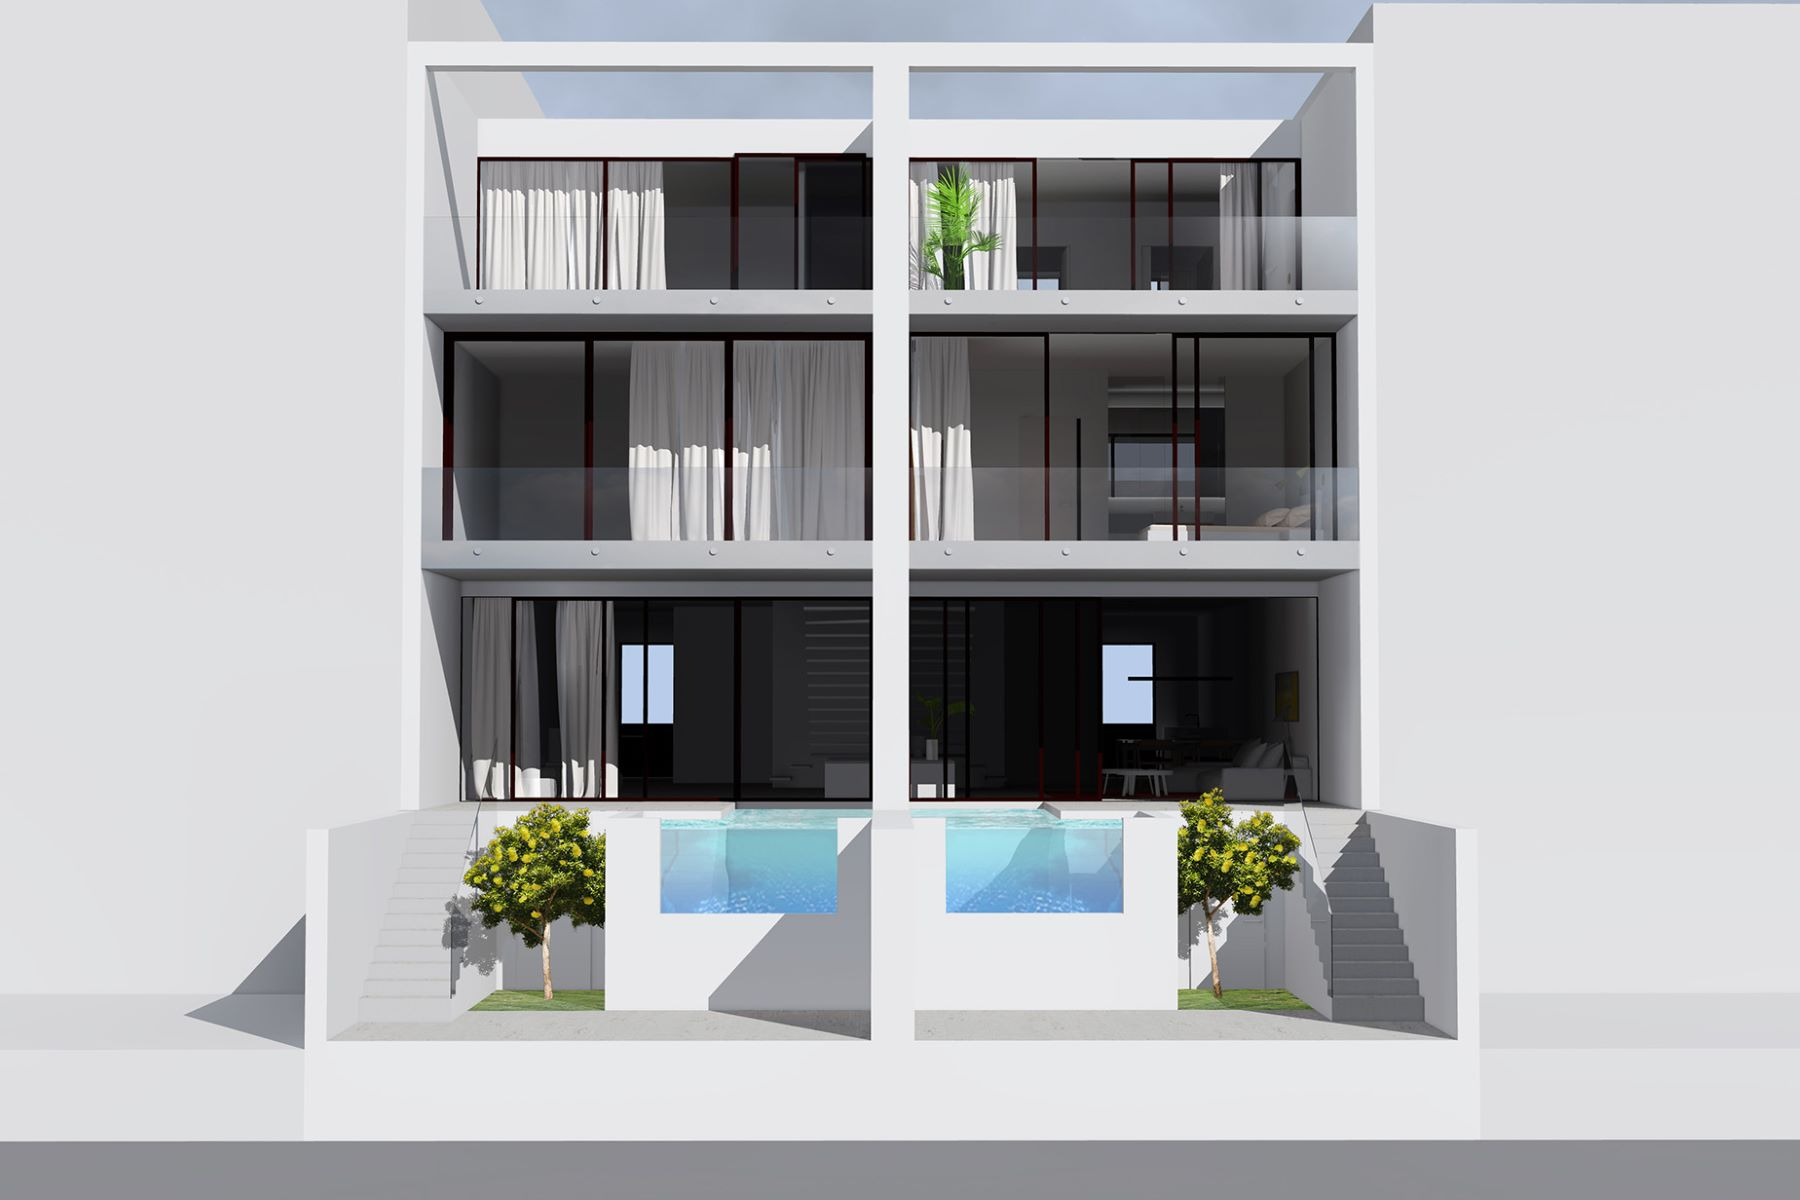 Single Family Home for Sale at Houses under construction, modern, good high quality, near the center and be ... Empuriabrava, Costa Brava, 17487 Spain